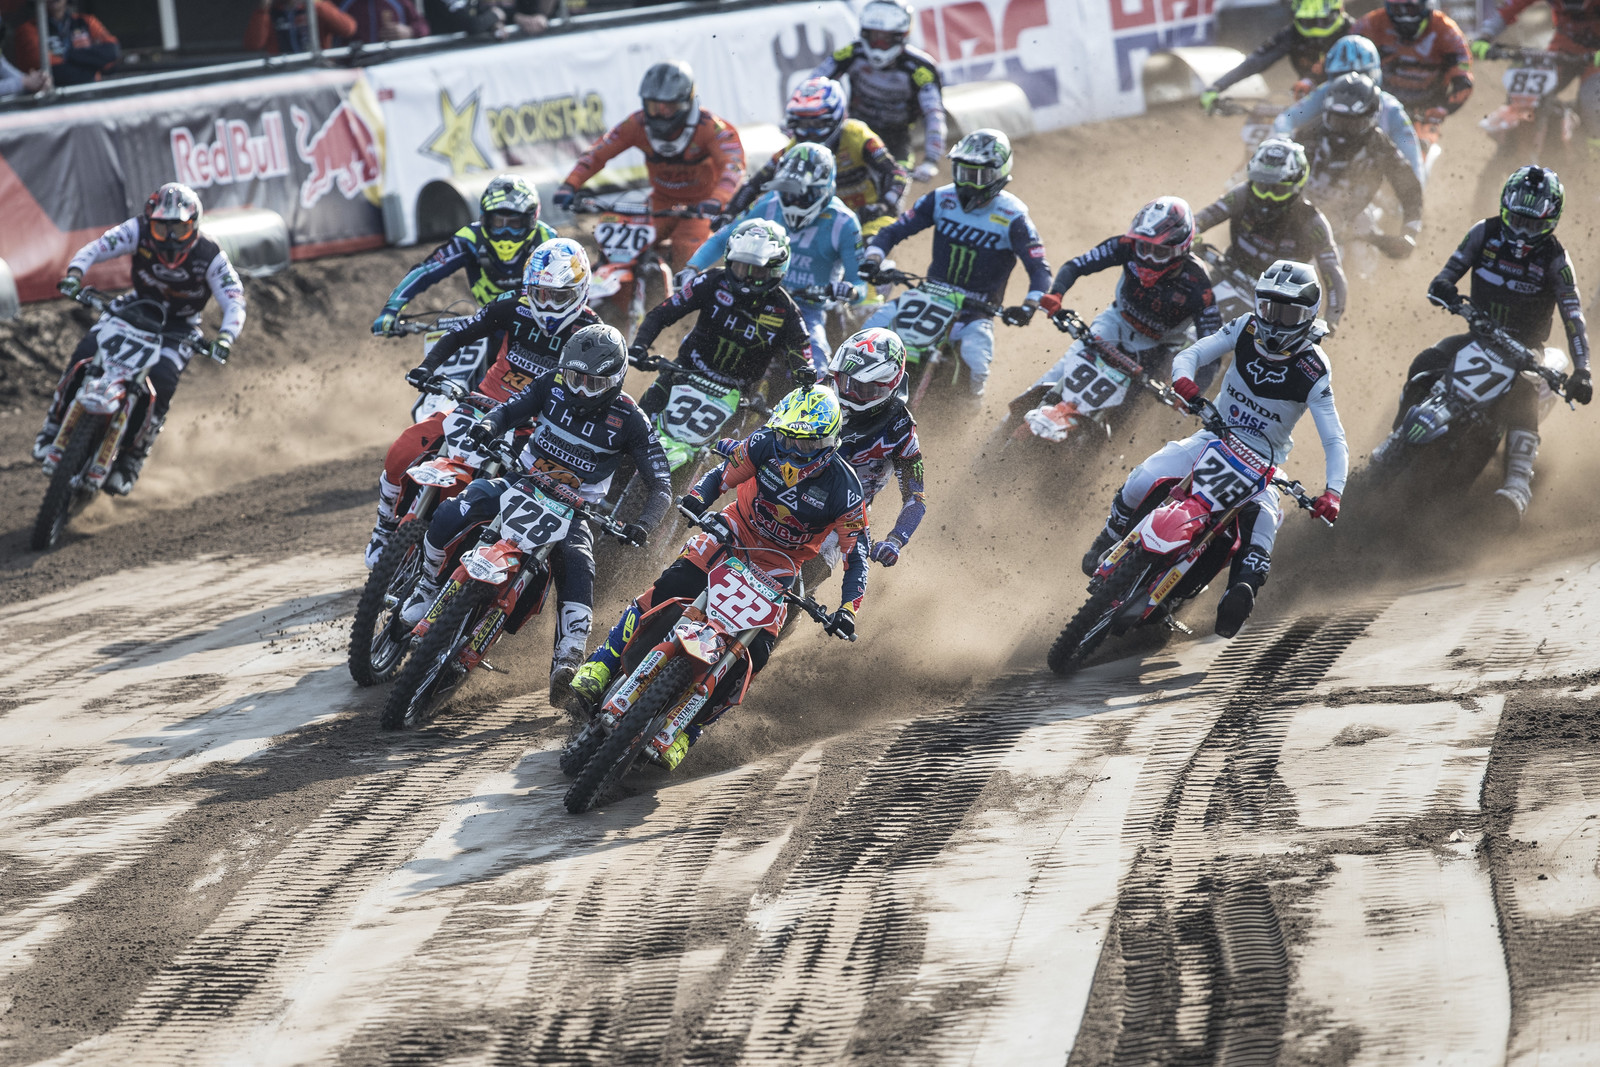 The Netherlands is known for its sand. The dark loamy sand of Valkenswaard took down a fair share of riders throughout the weekend.